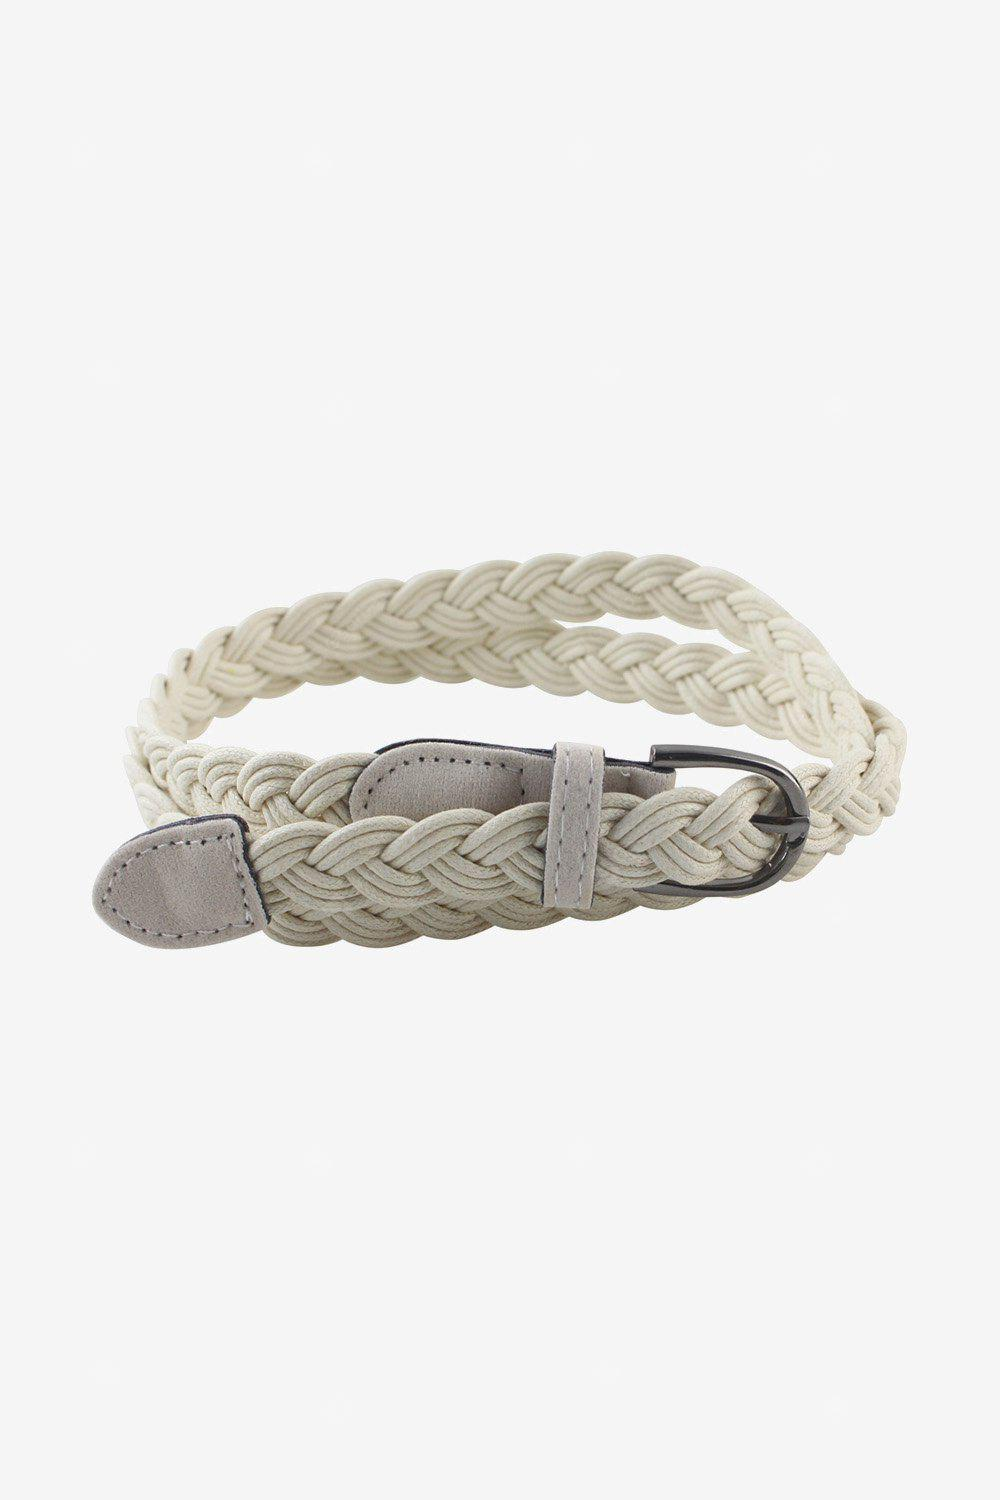 Fashion Thin Braided Leather Belt with Buckle for Women